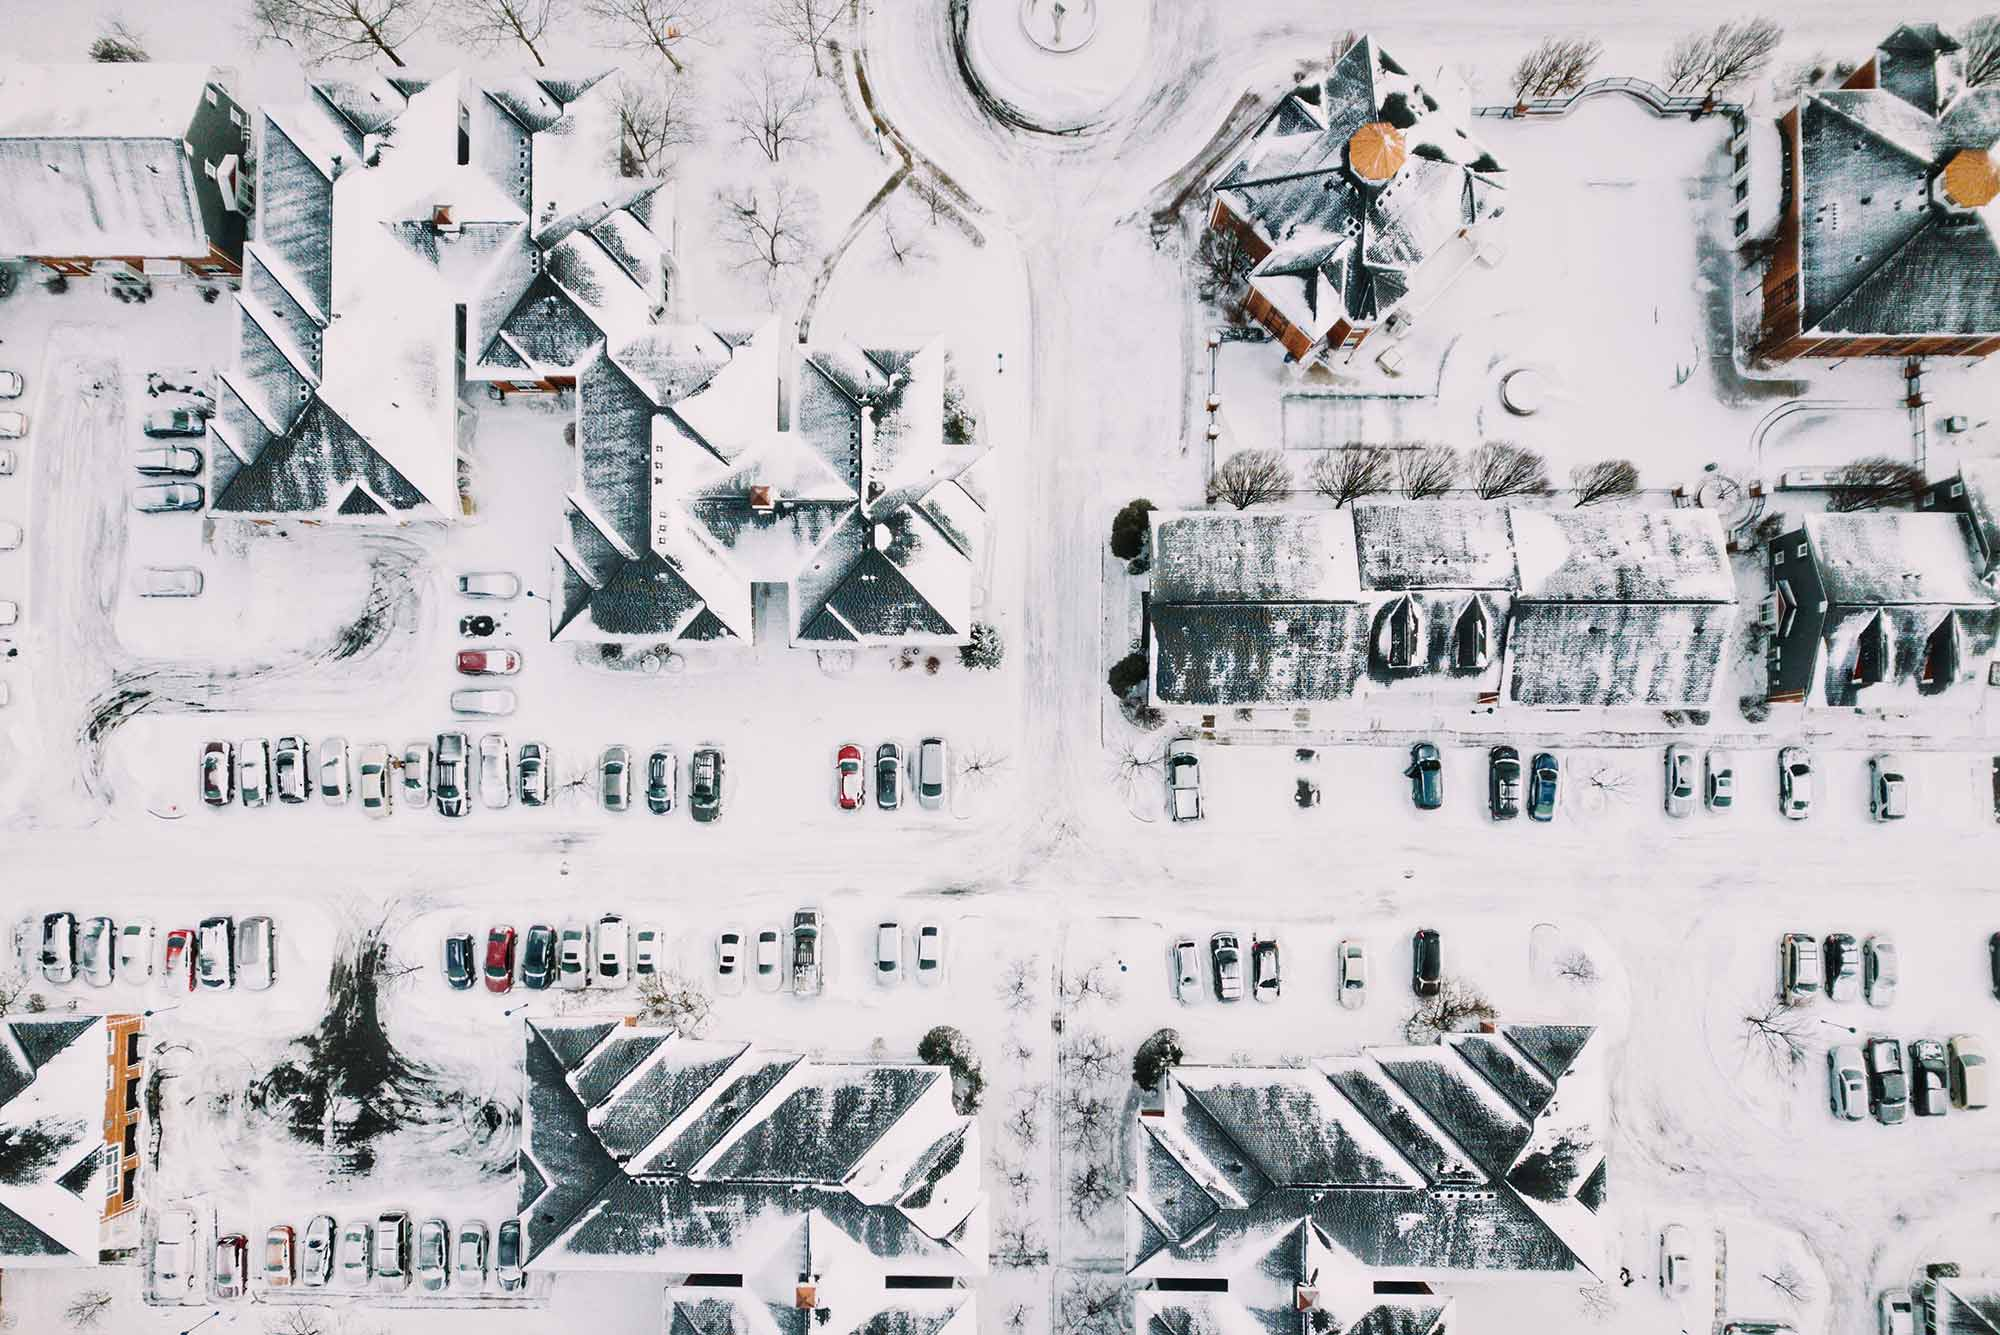 Drone Photography picture of snowy houses